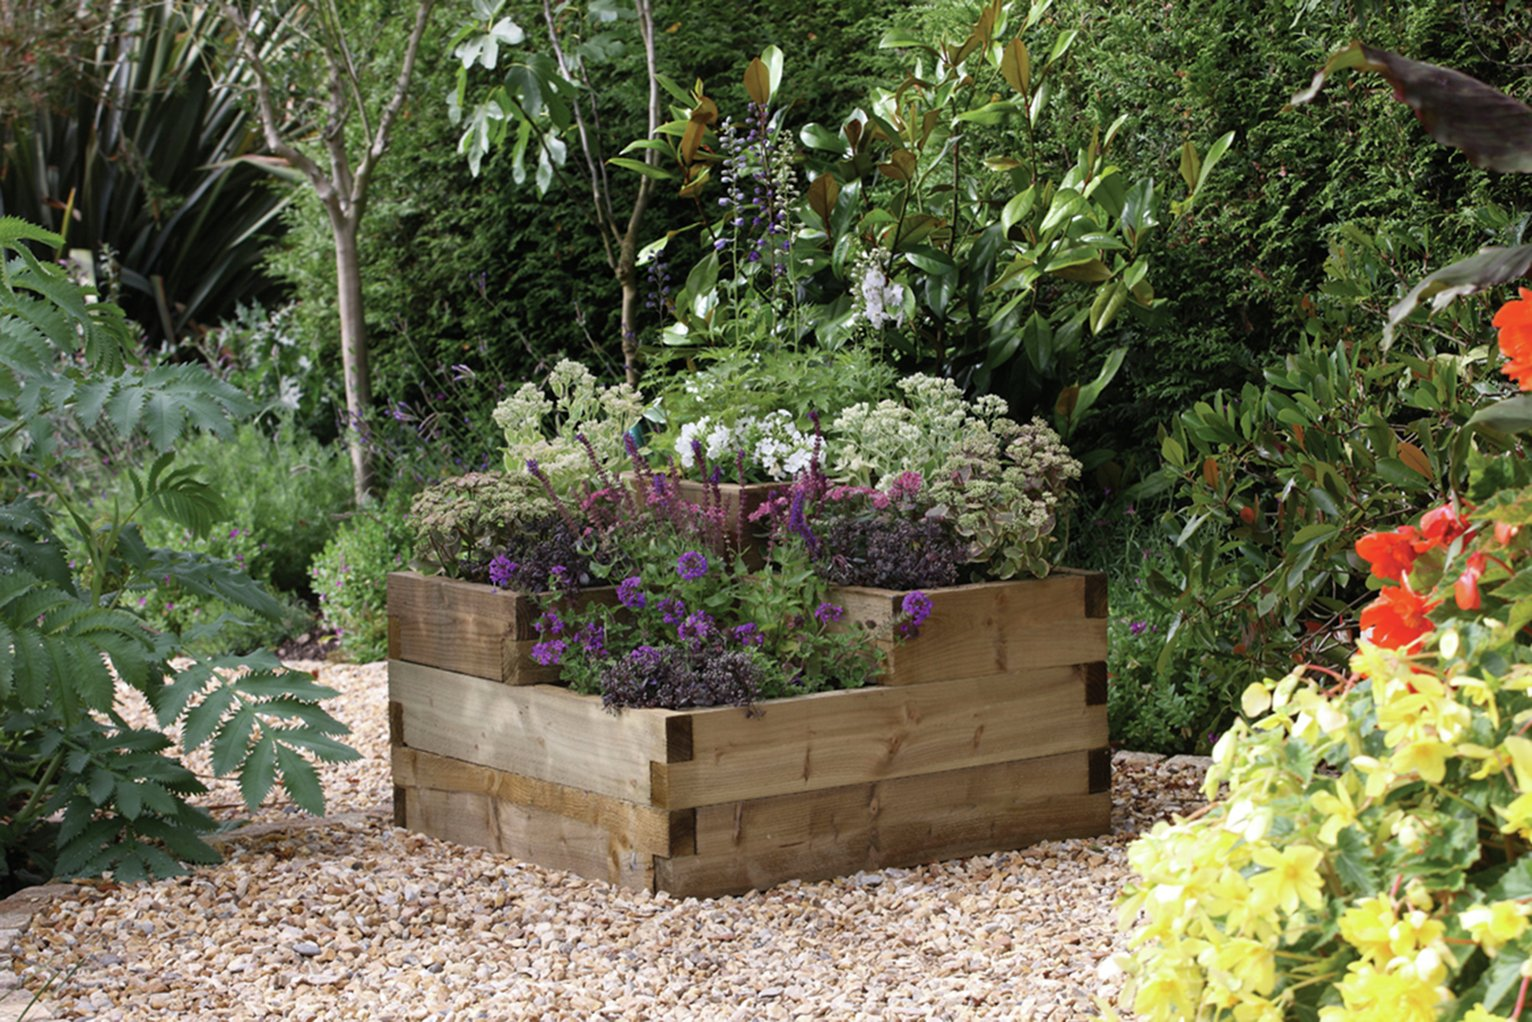 Forest Caledonian Tiered Raised Bed Planter. lowest price